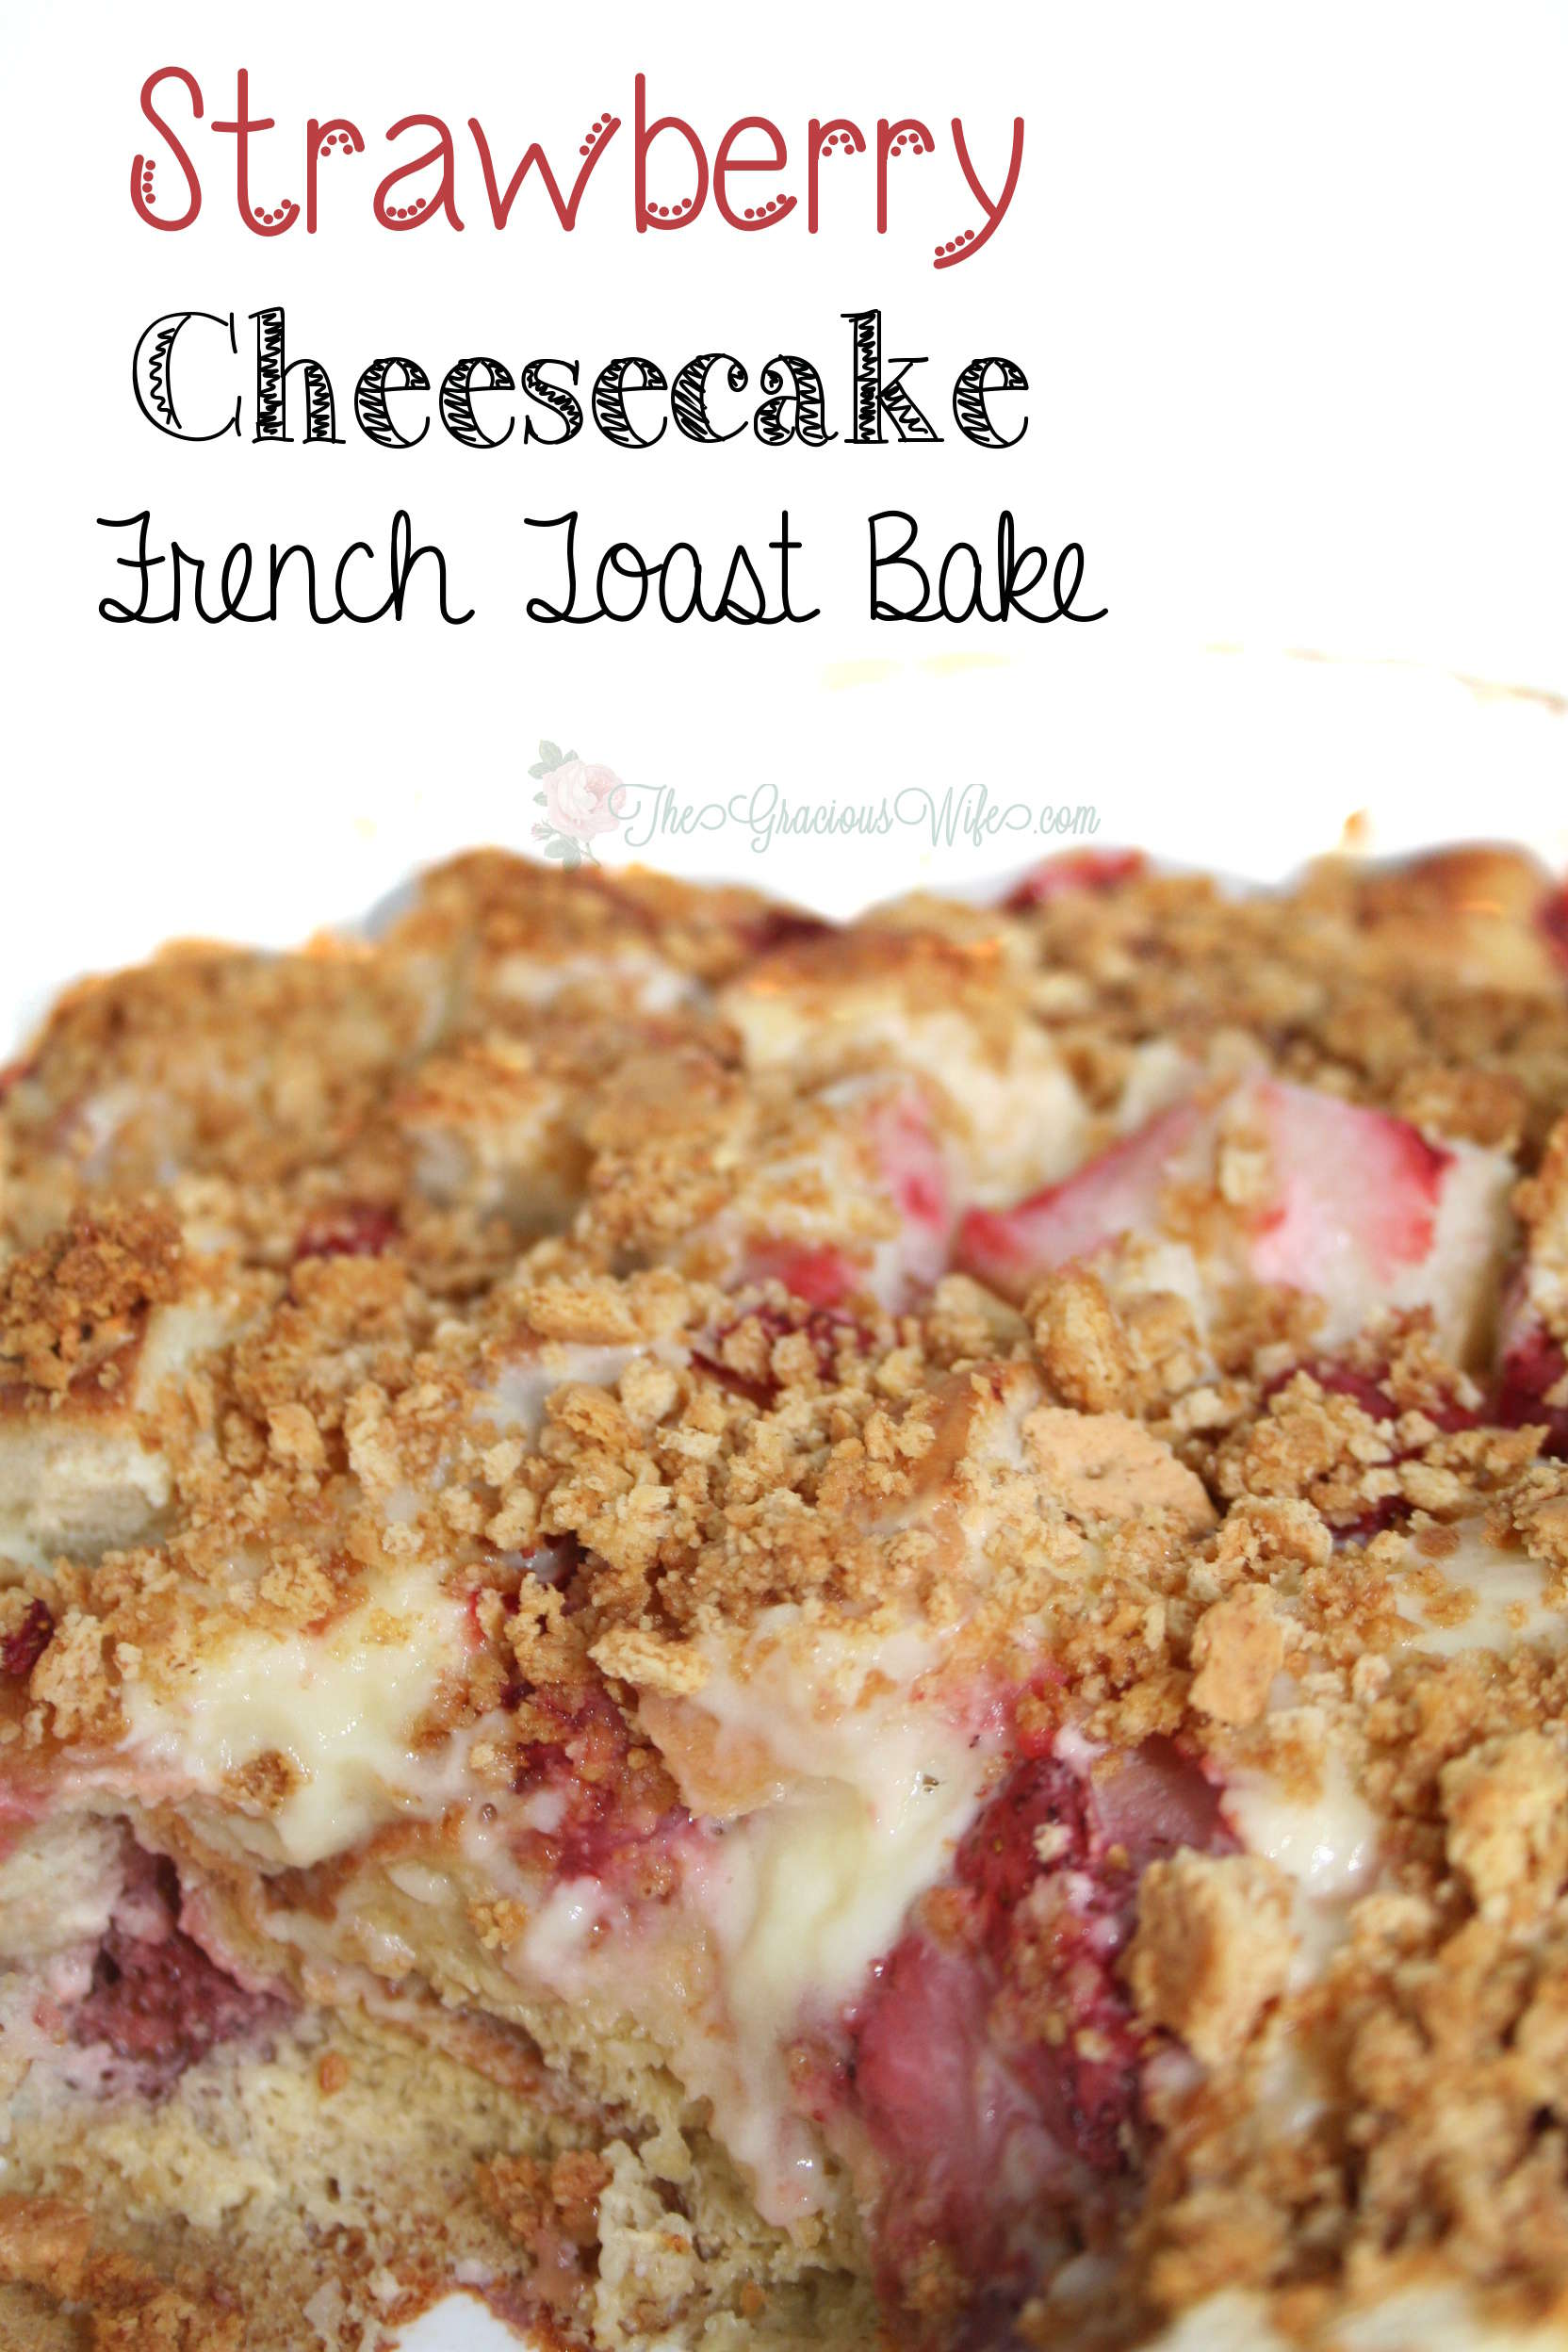 Strawberry Cheesecake French Toast Bake | The Gracious Wife